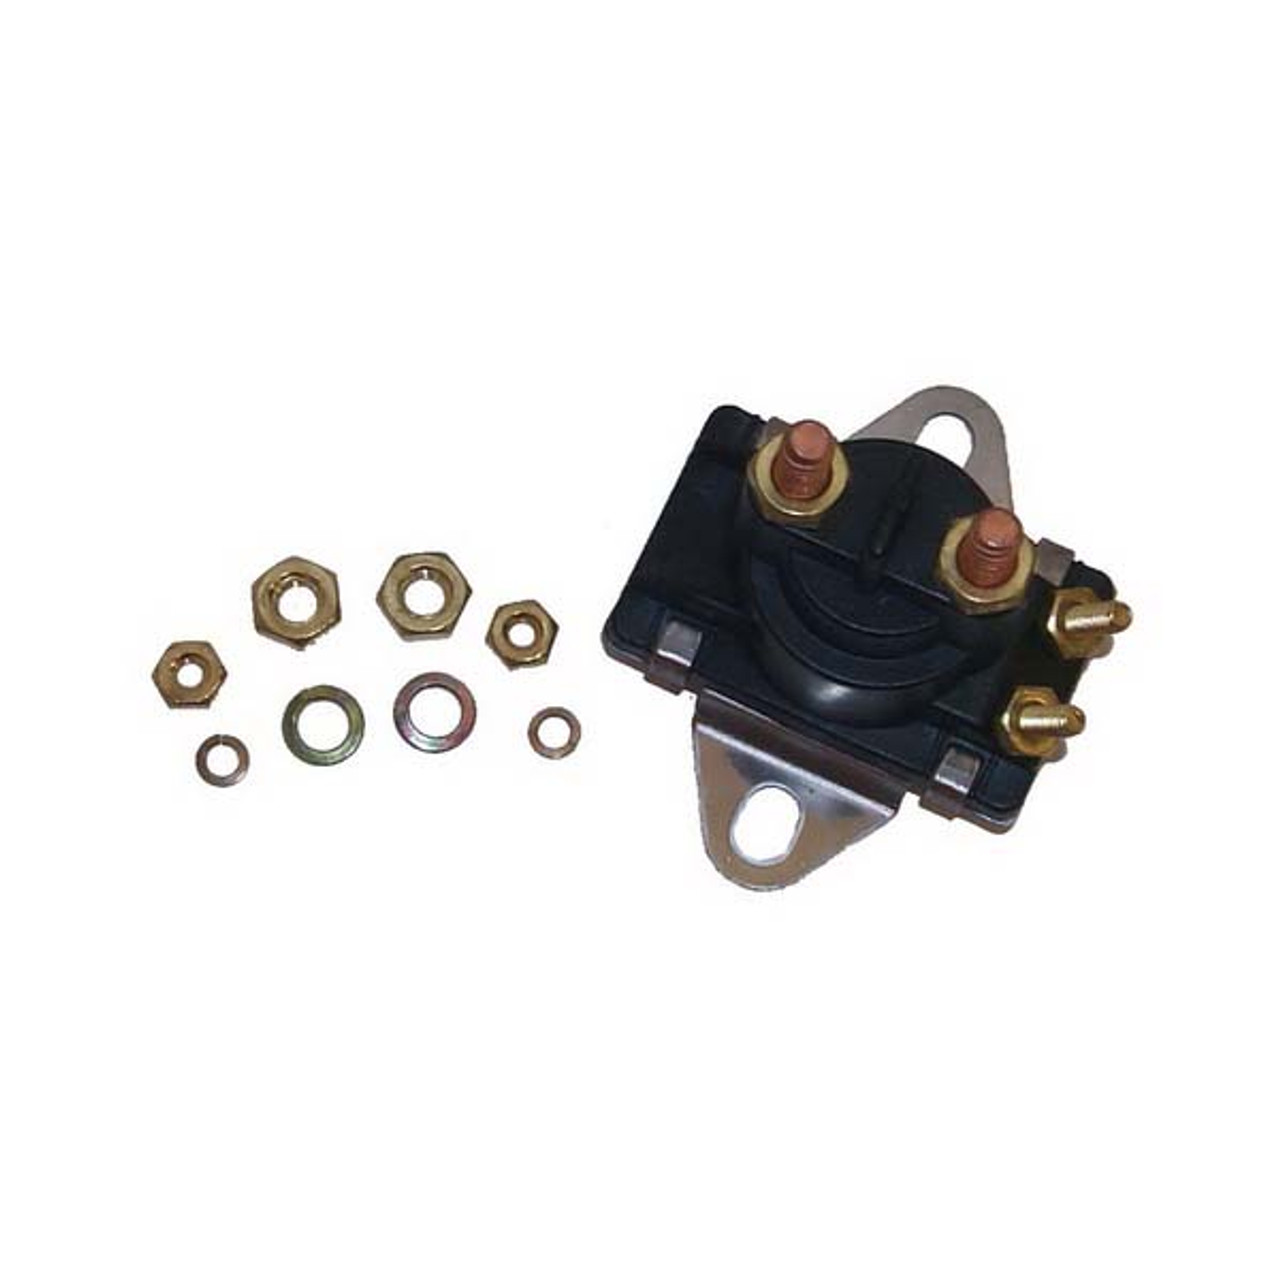 Starter /& Trim Solenoid Relay Switch for Mercury Outboard Mercruiser 89-96054T